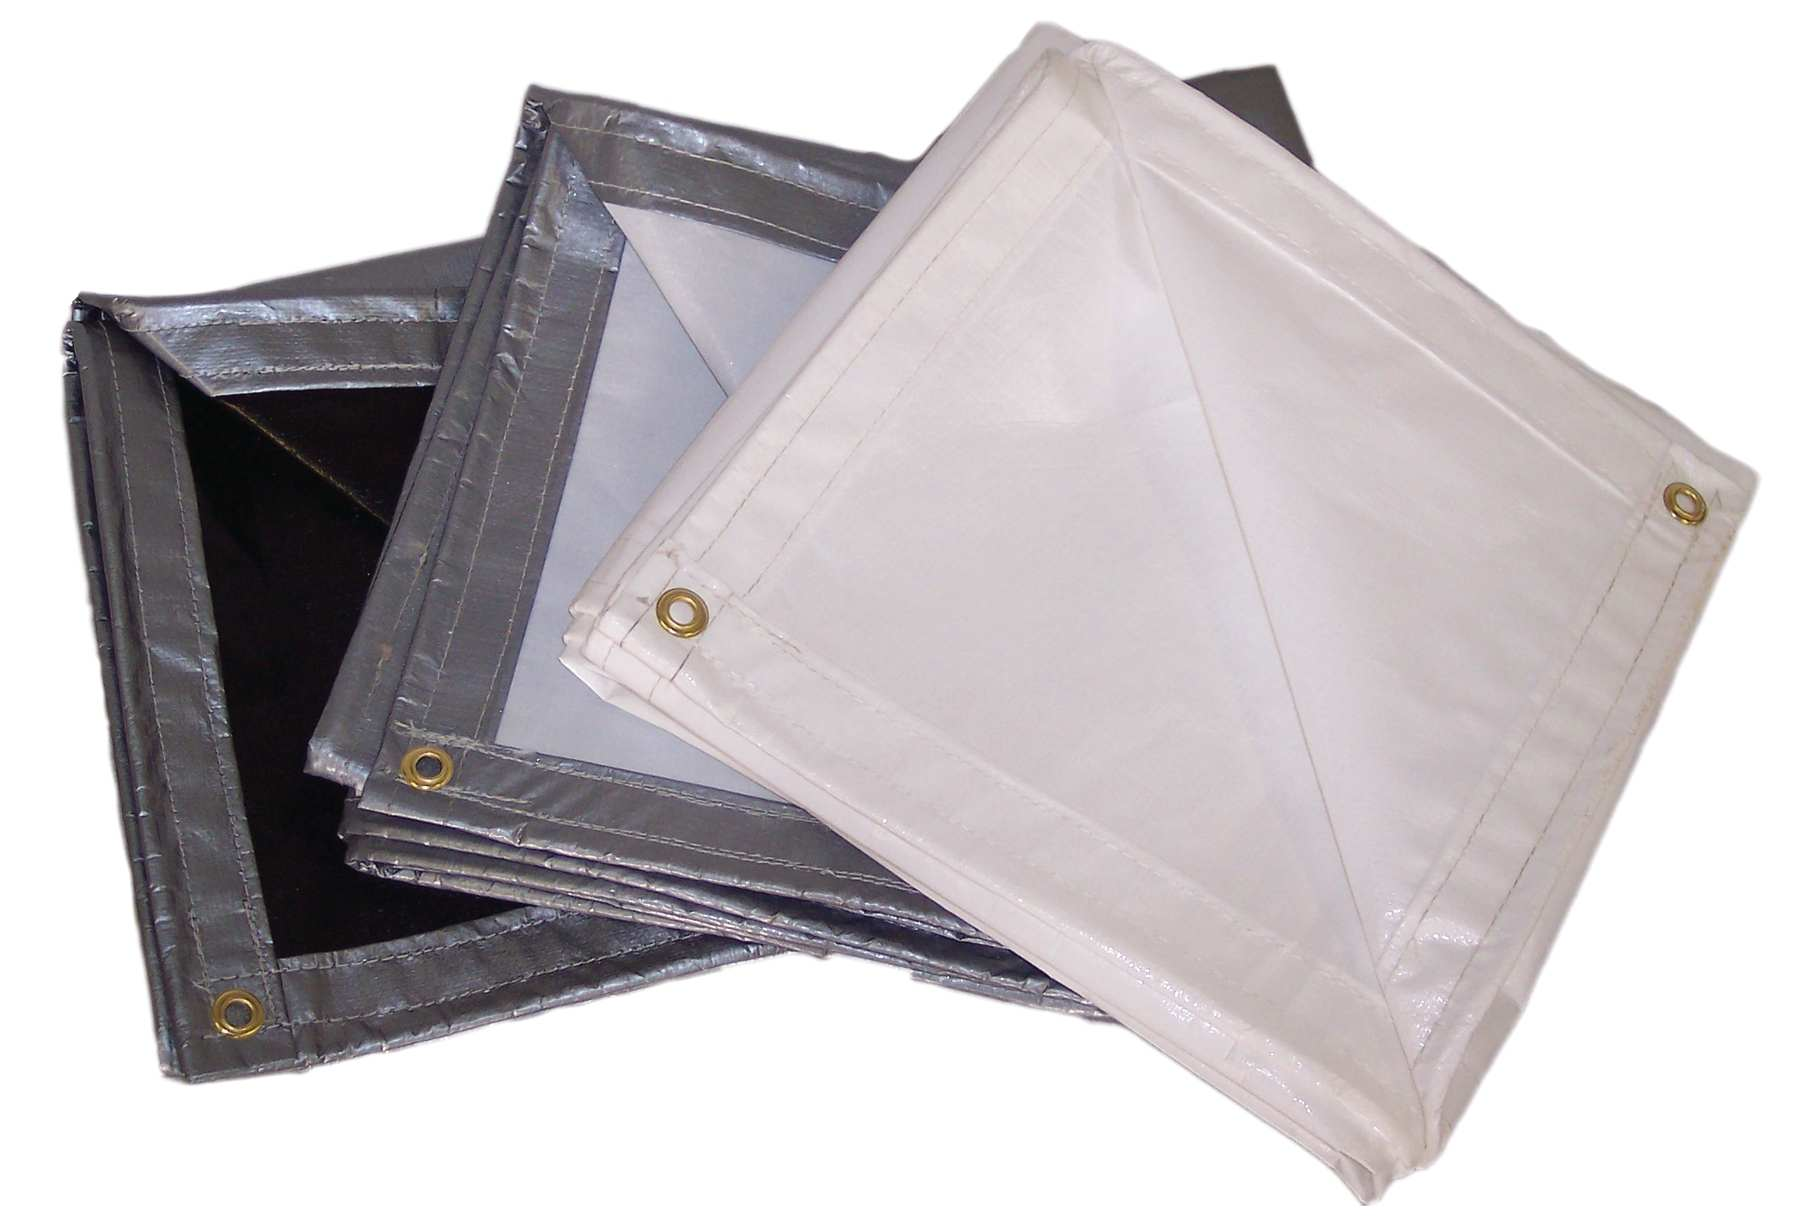 Heavy Duty Reinforced Polyethylene Tarps – 12 mil., 7 oz./sq. Yd.; Size (ft.) 24 x 24